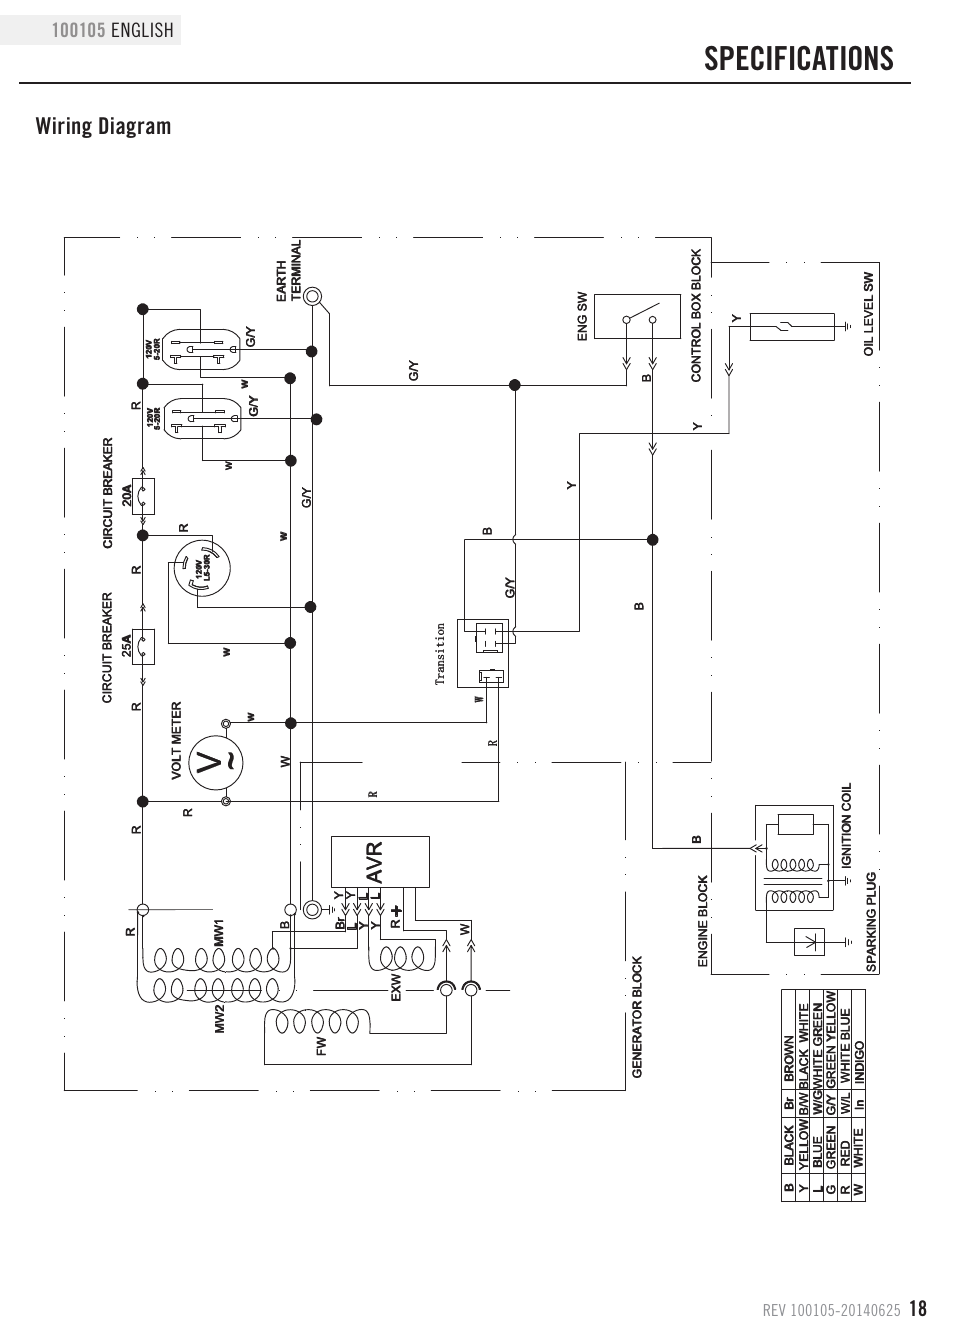 medium resolution of specifications wiring diagram champion power equipment 100105 user manual page 21 30